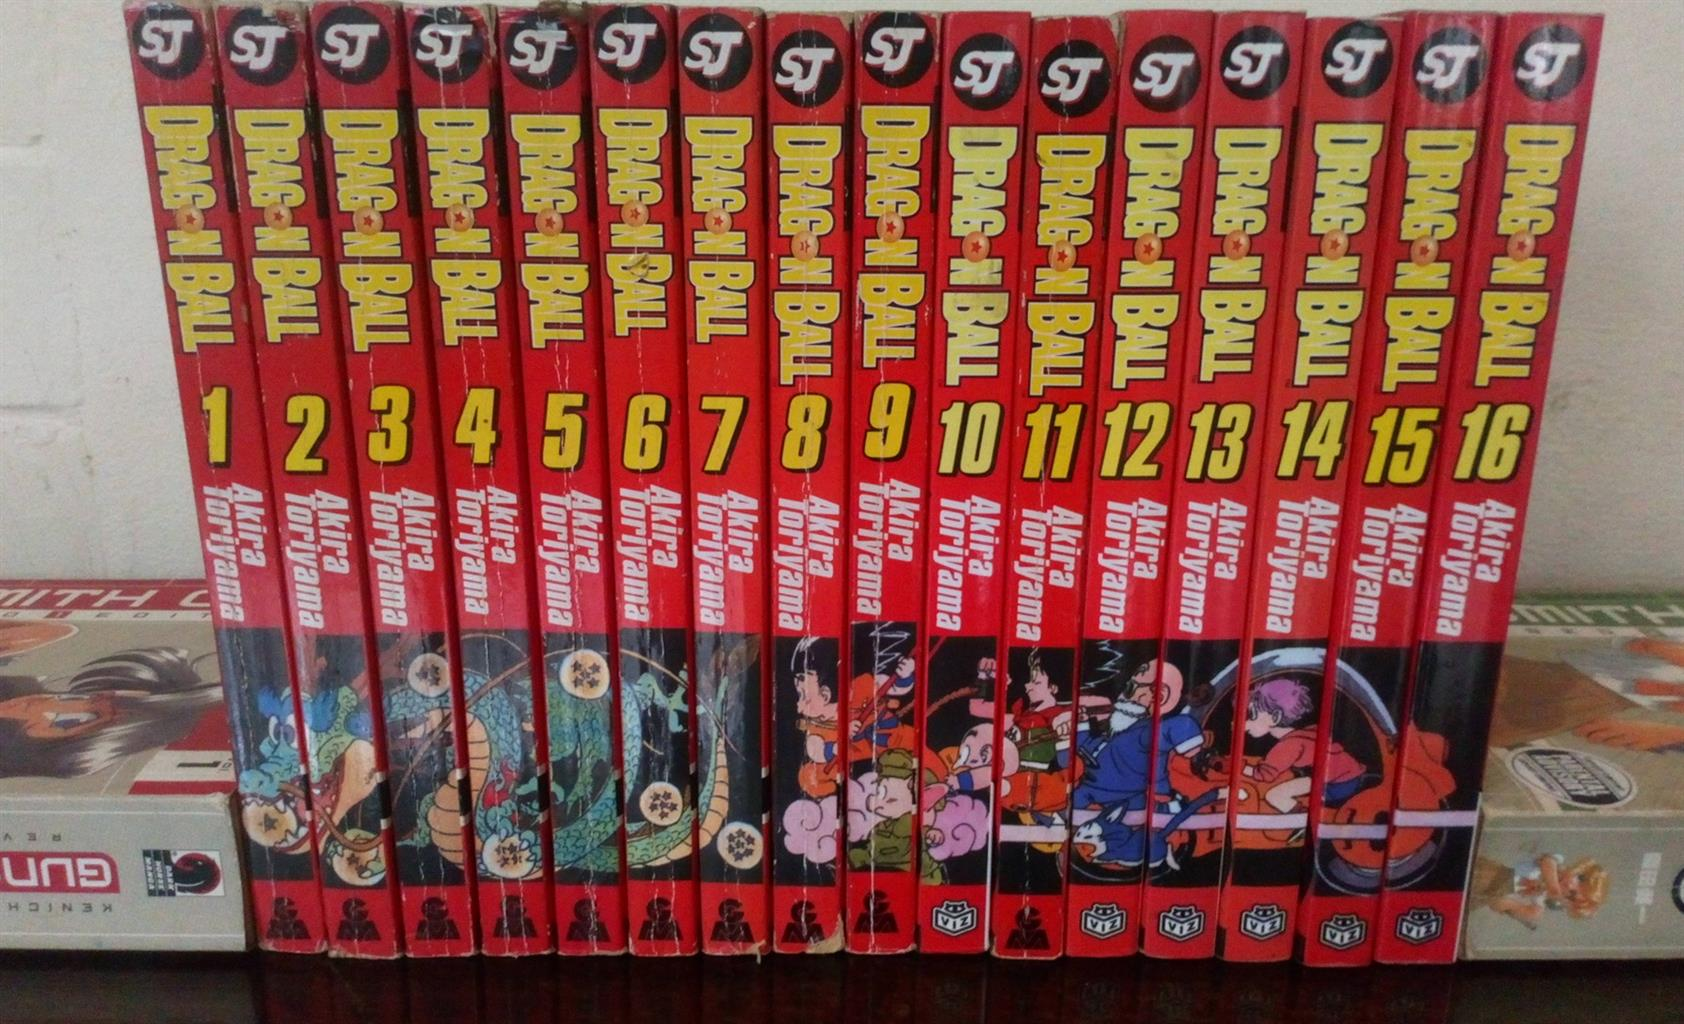 Manga Full Dragon Balls Manga Volume 1-16